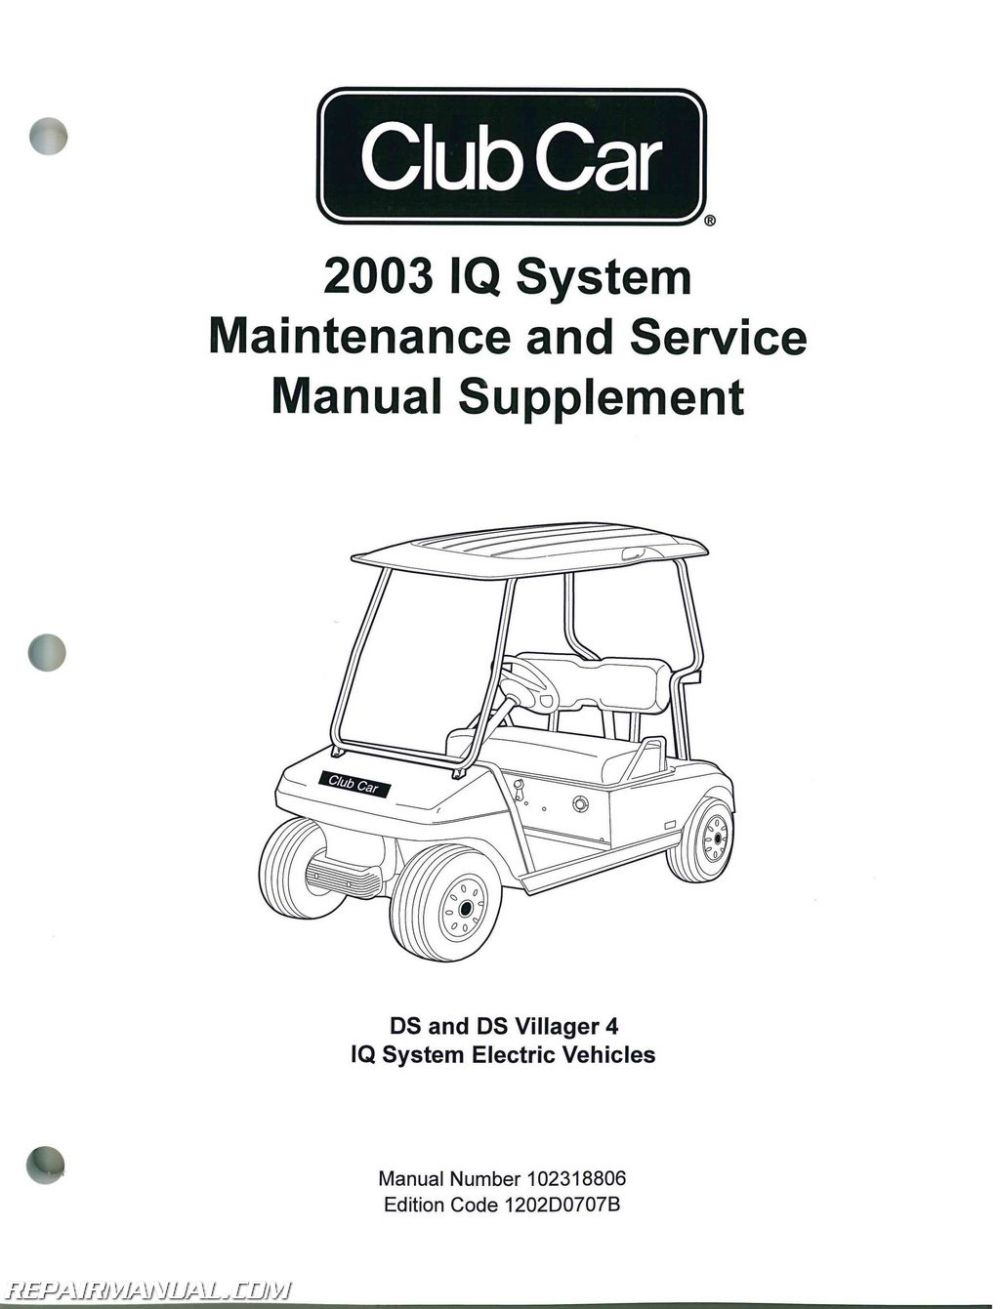 medium resolution of 2003 club car iq system maintenance service manual supplement